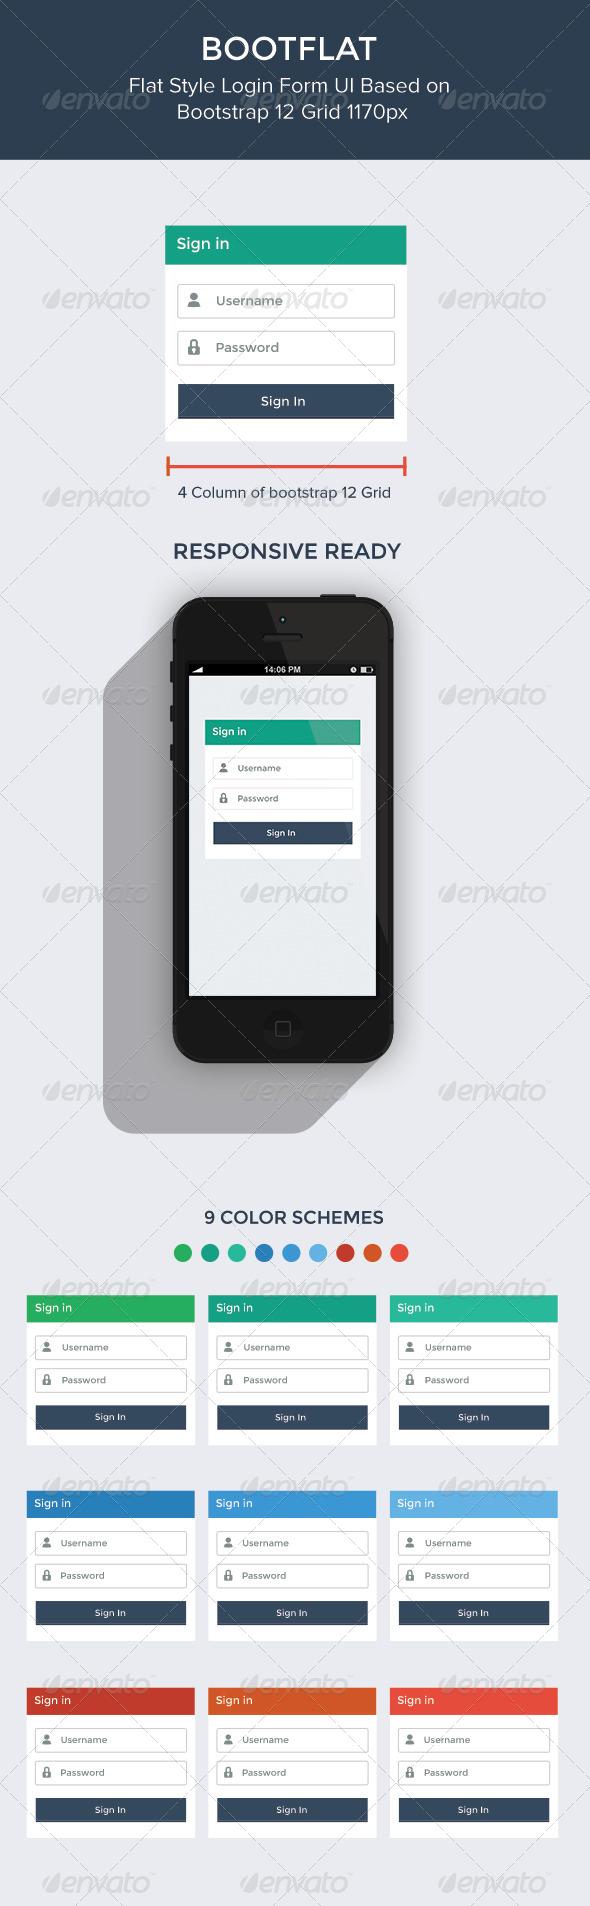 GraphicRiver Bootflat Login Form 7169487